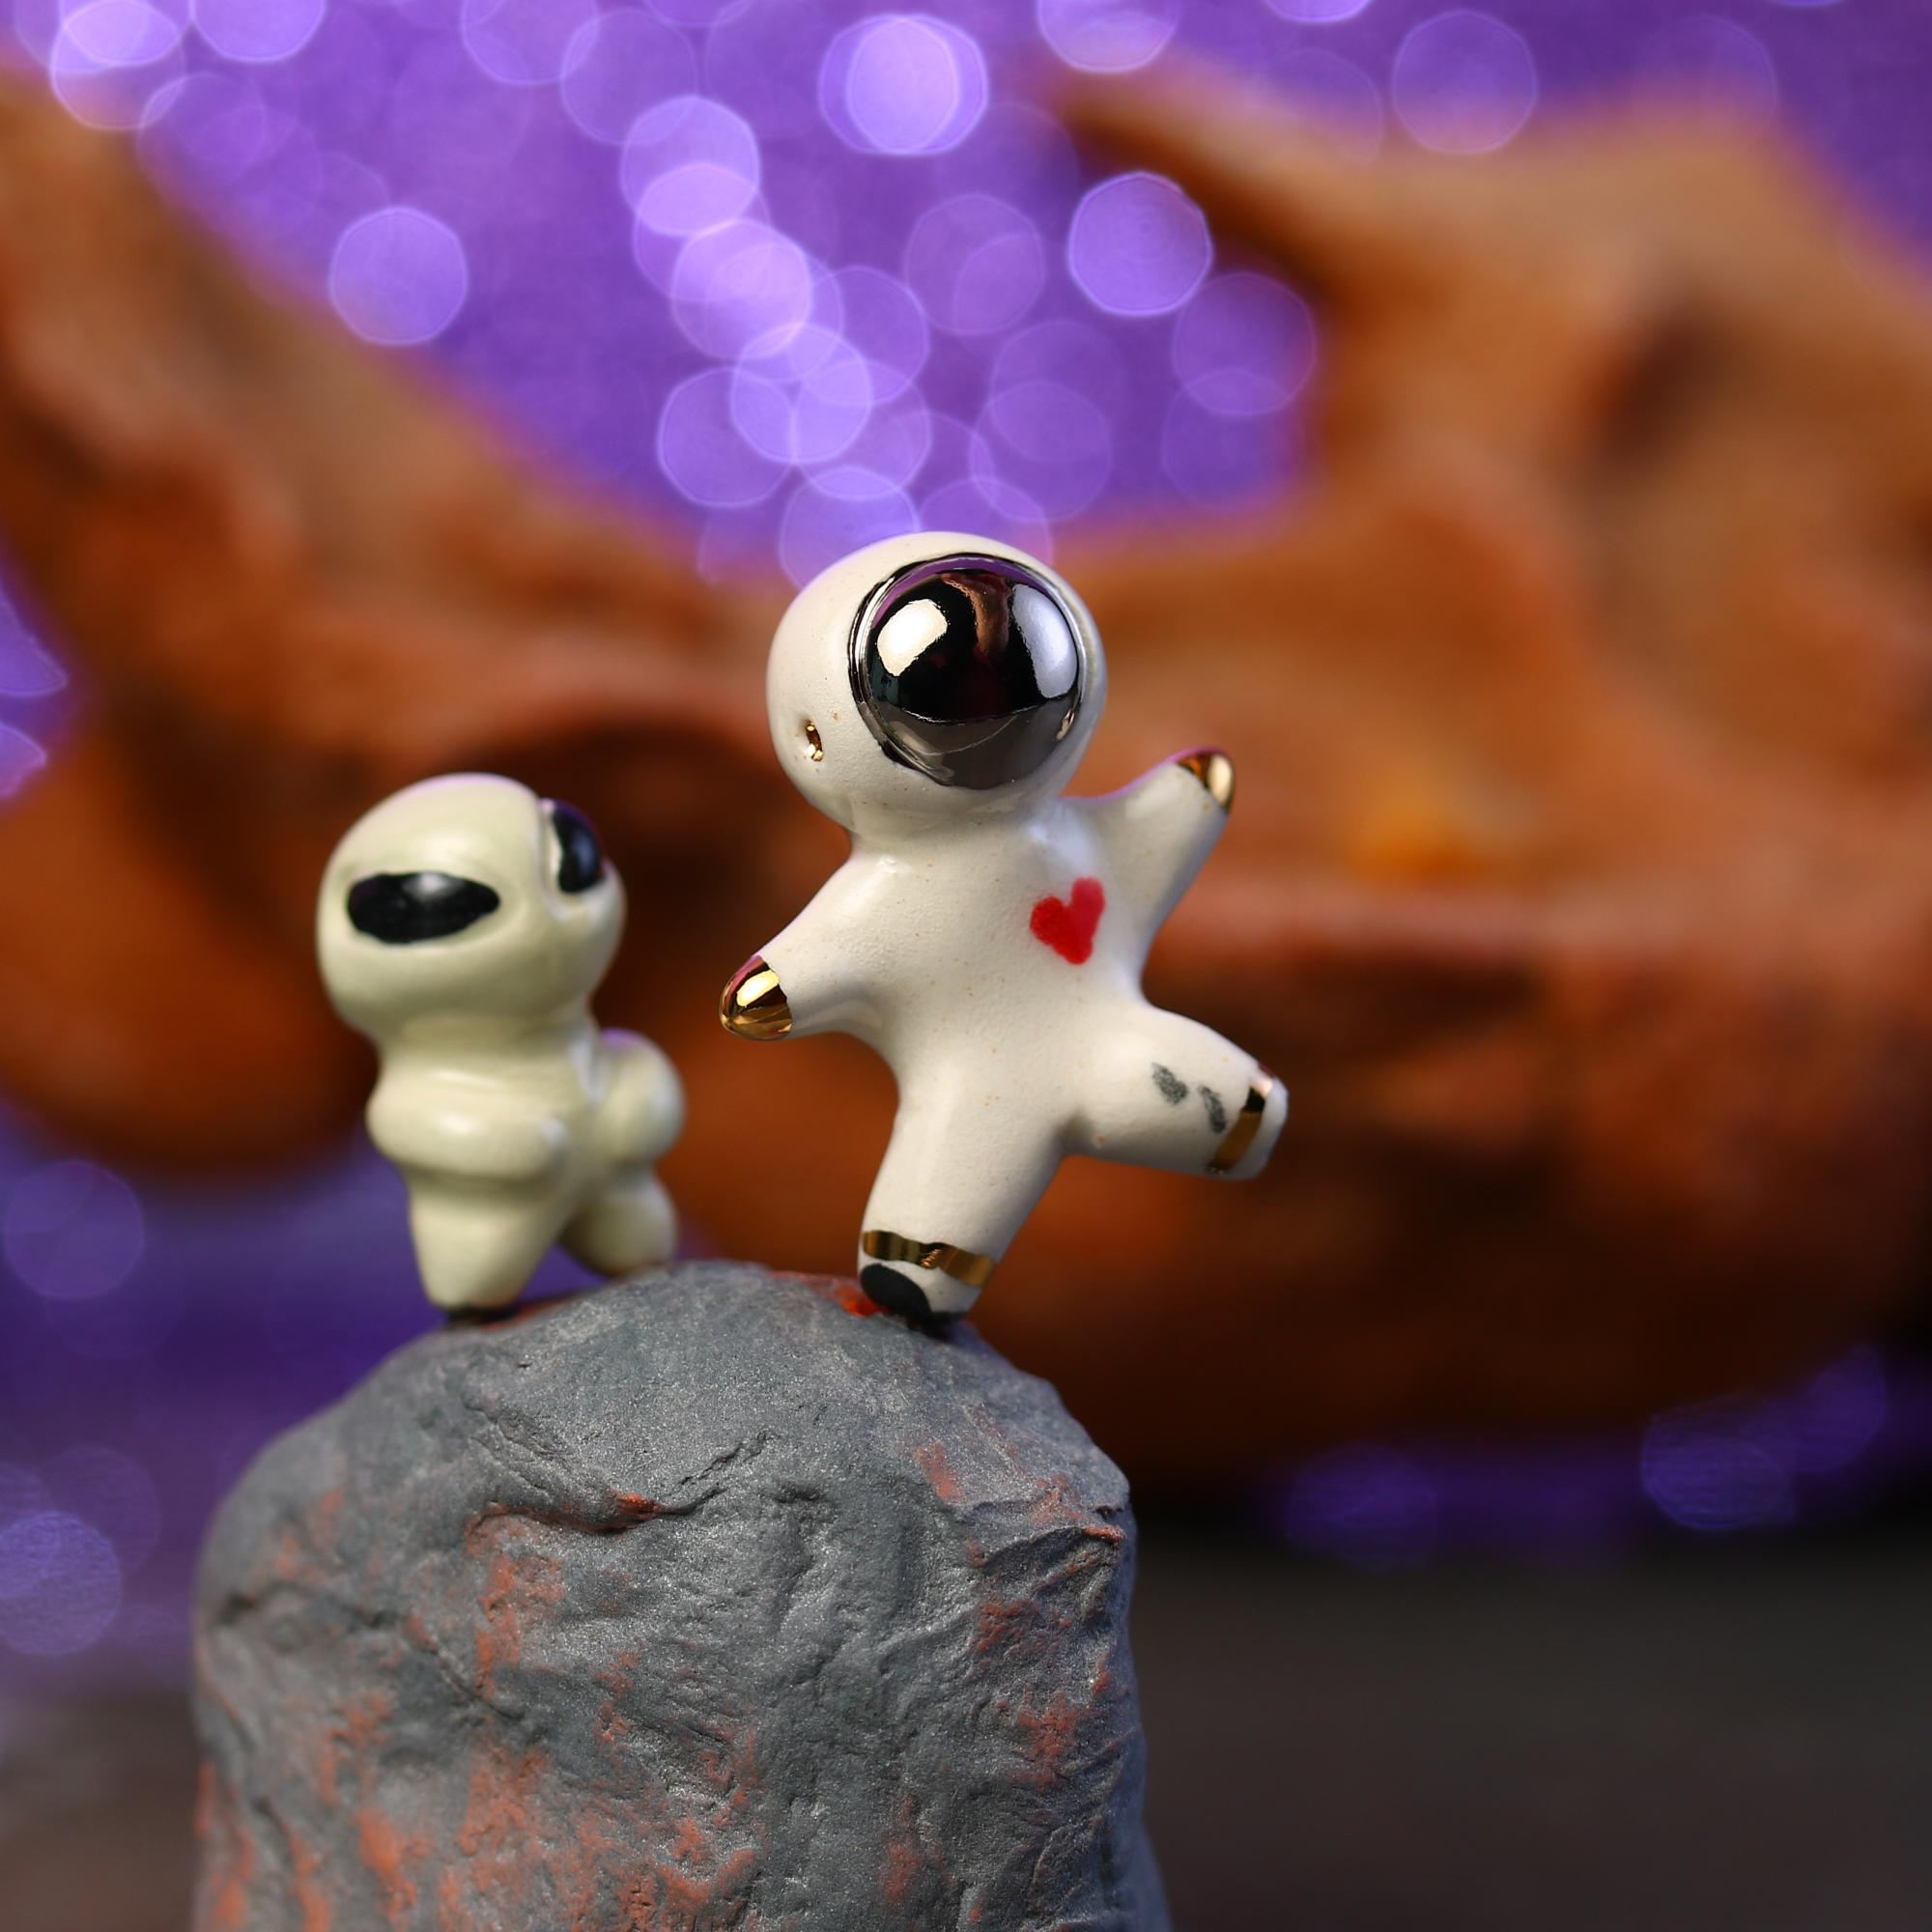 Astronaut and Alien Figurine